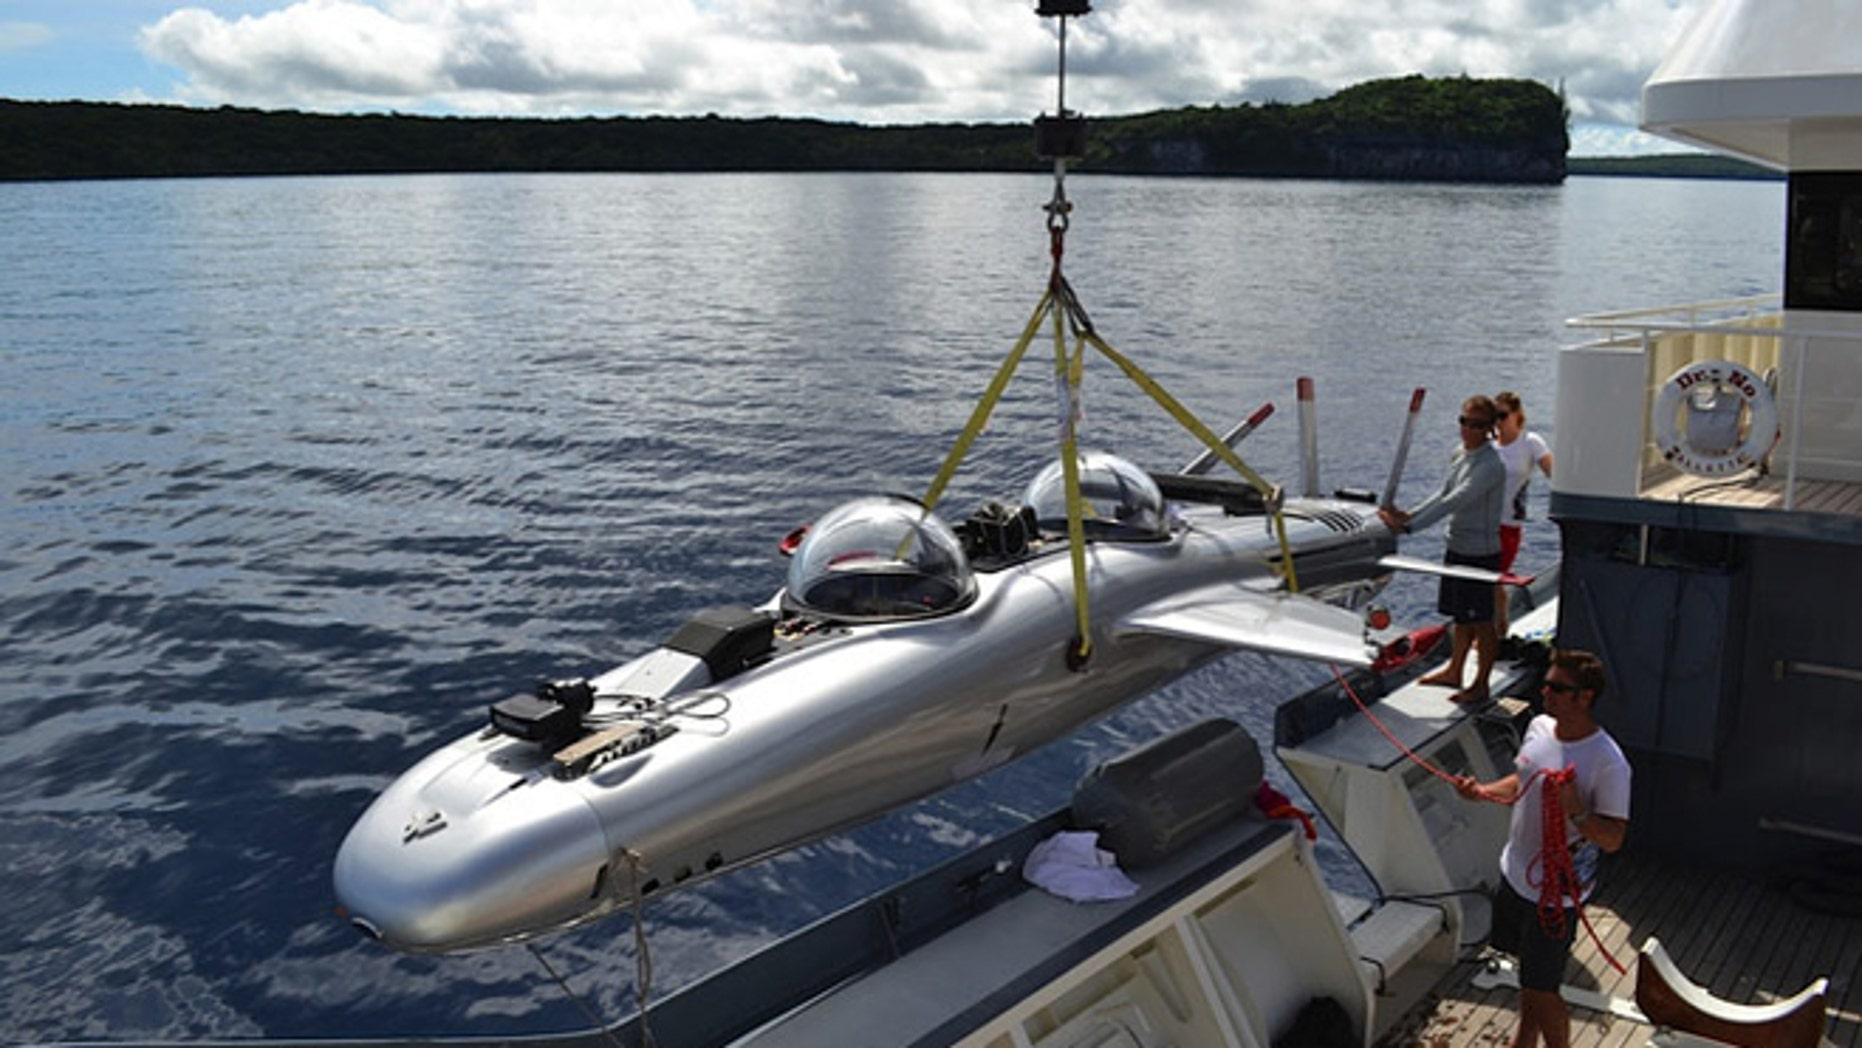 The Deepflight Super Falcon submarine aims to push the limits of submersibles during a Lake Tahoe expedition.